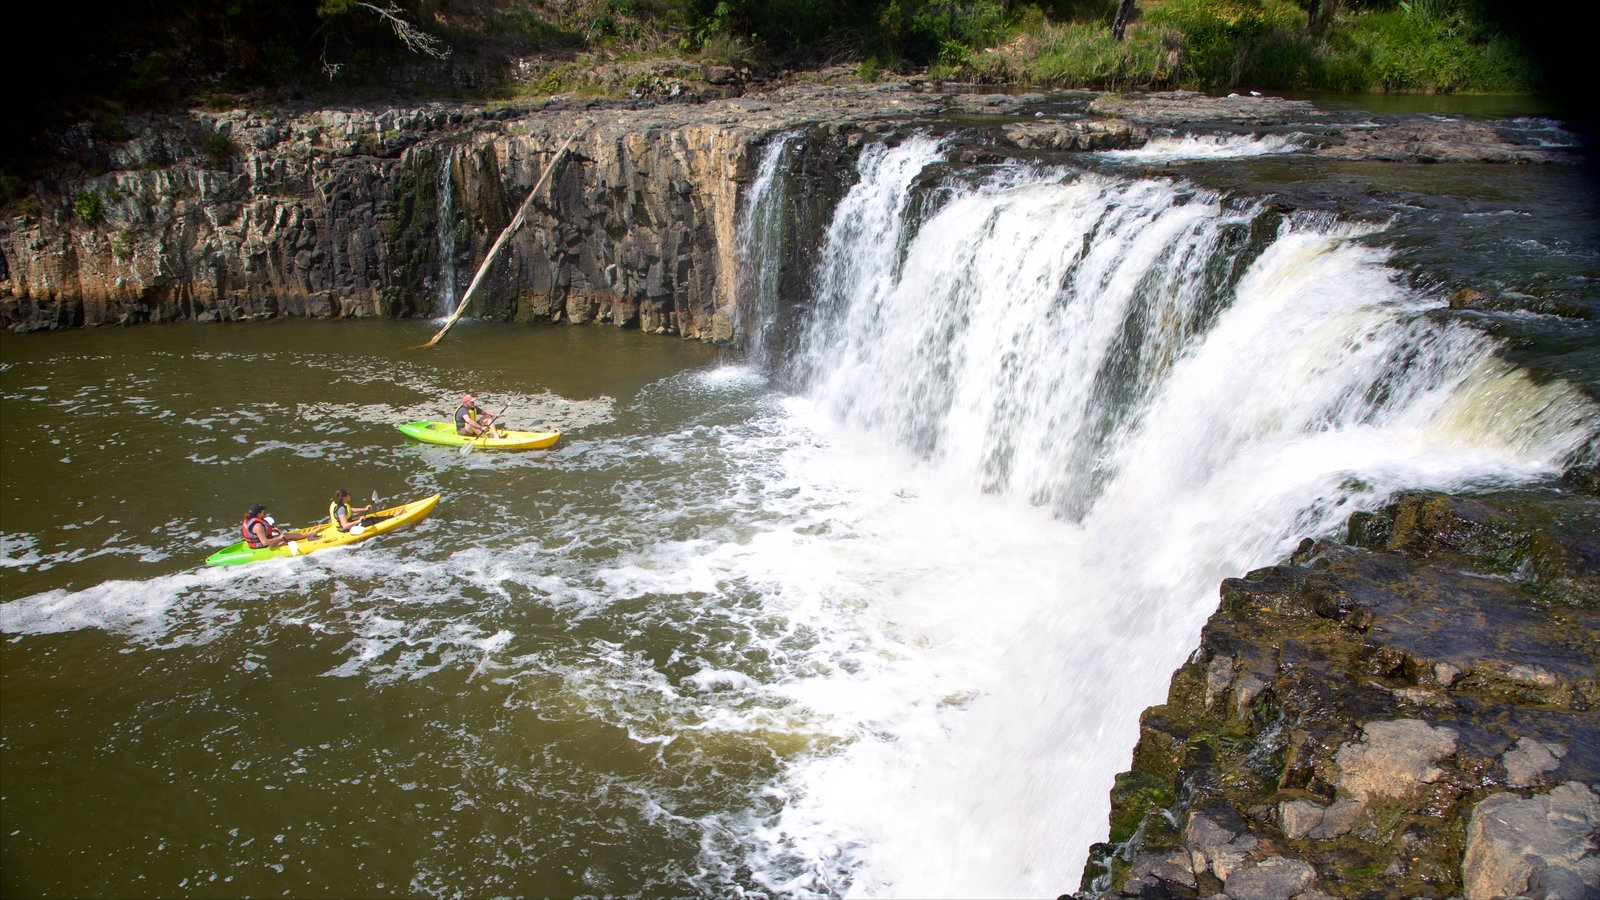 Haruru Falls showing kayaking or canoeing, a river or creek and a waterfall